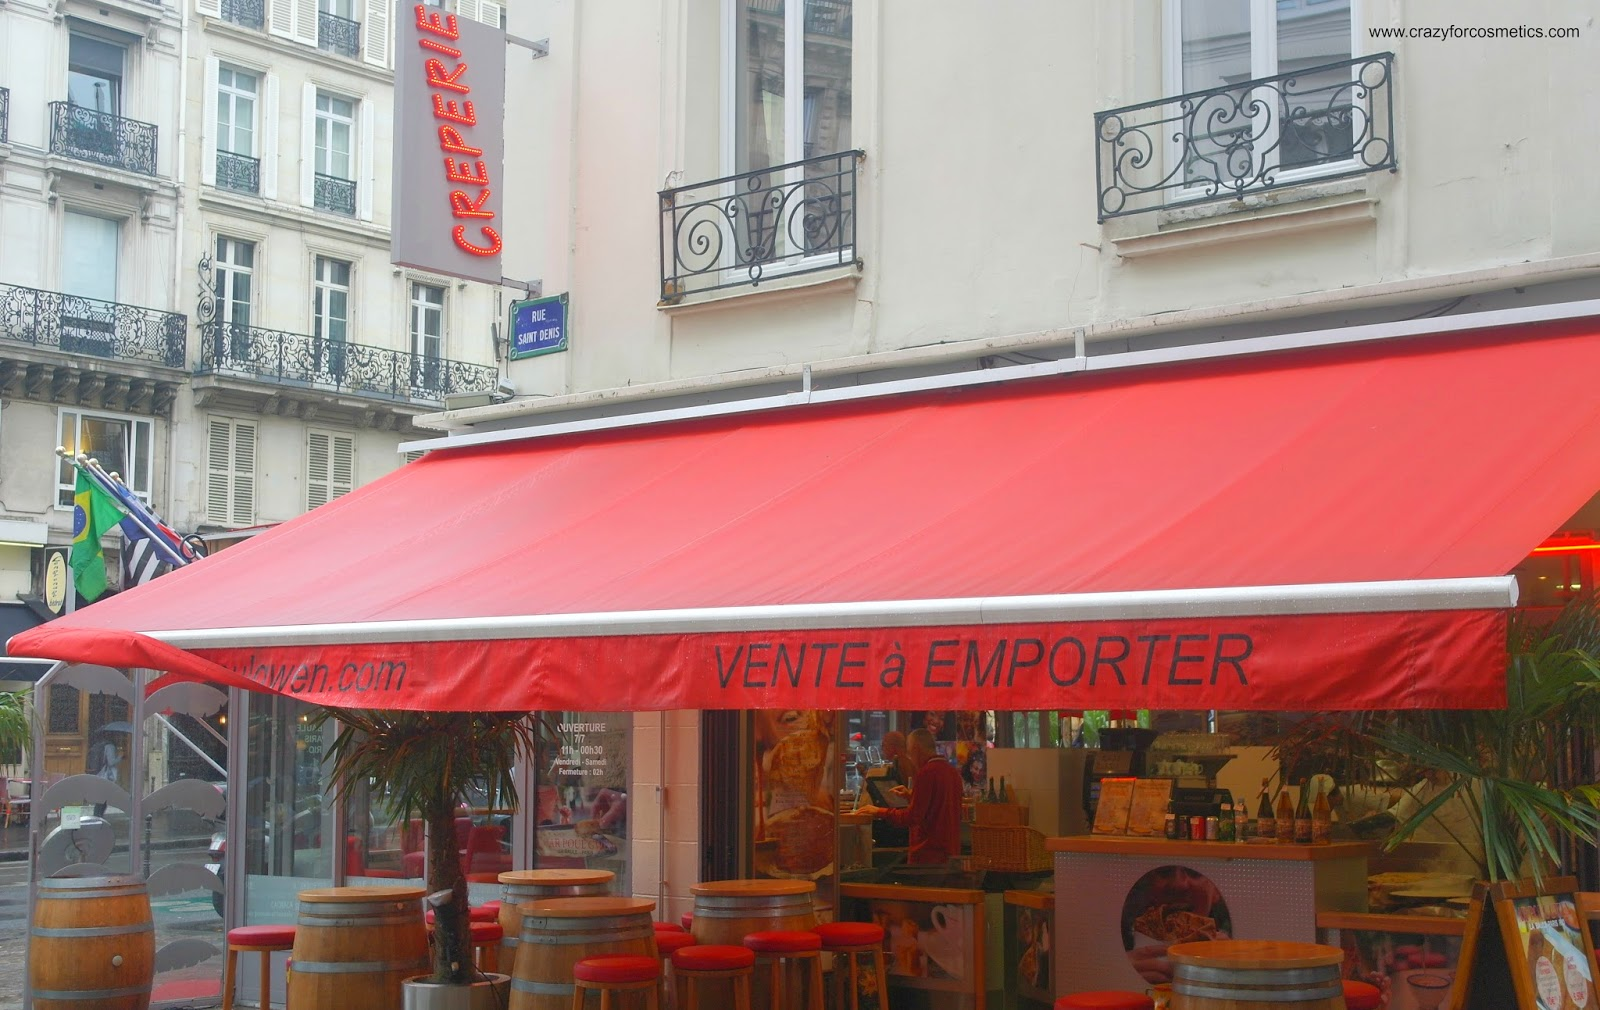 Street side cafes in PAris